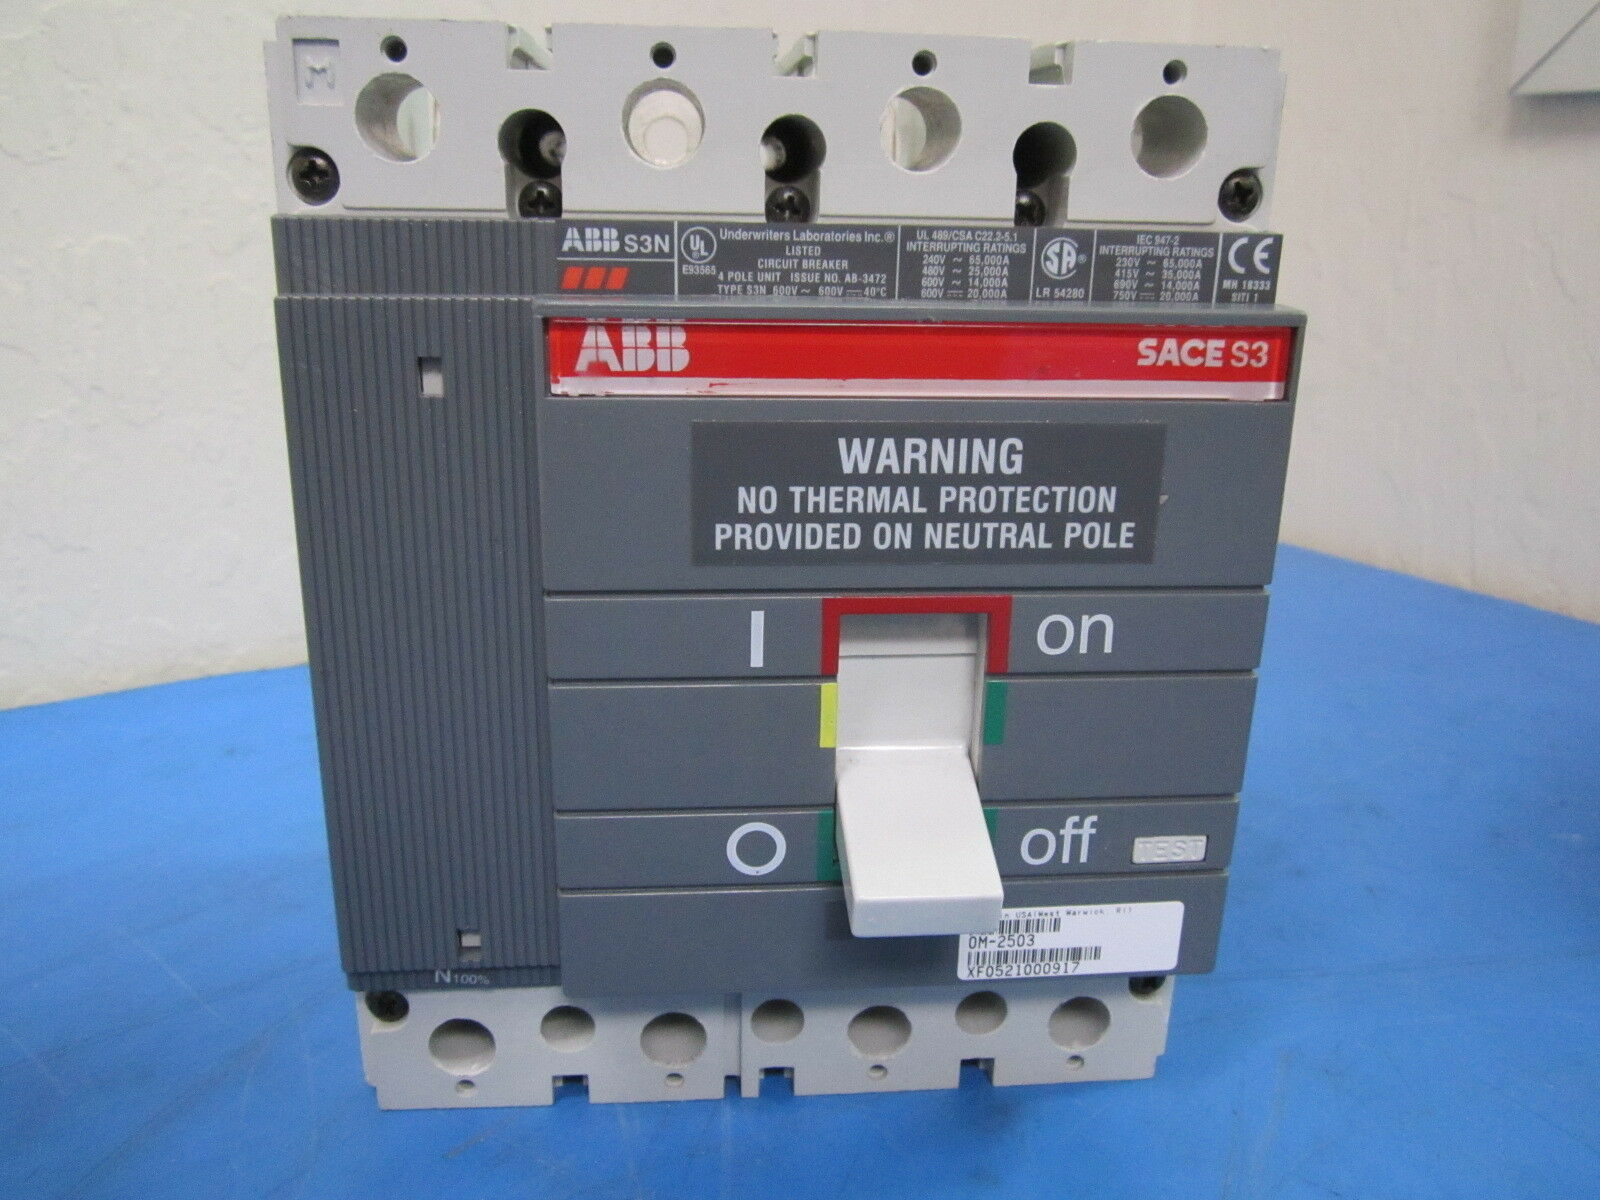 Used Abb Sace S3 150 Amp 400v Ac Circuit Breaker 11999 General Electric Ul489 D 3p 5a 240vac